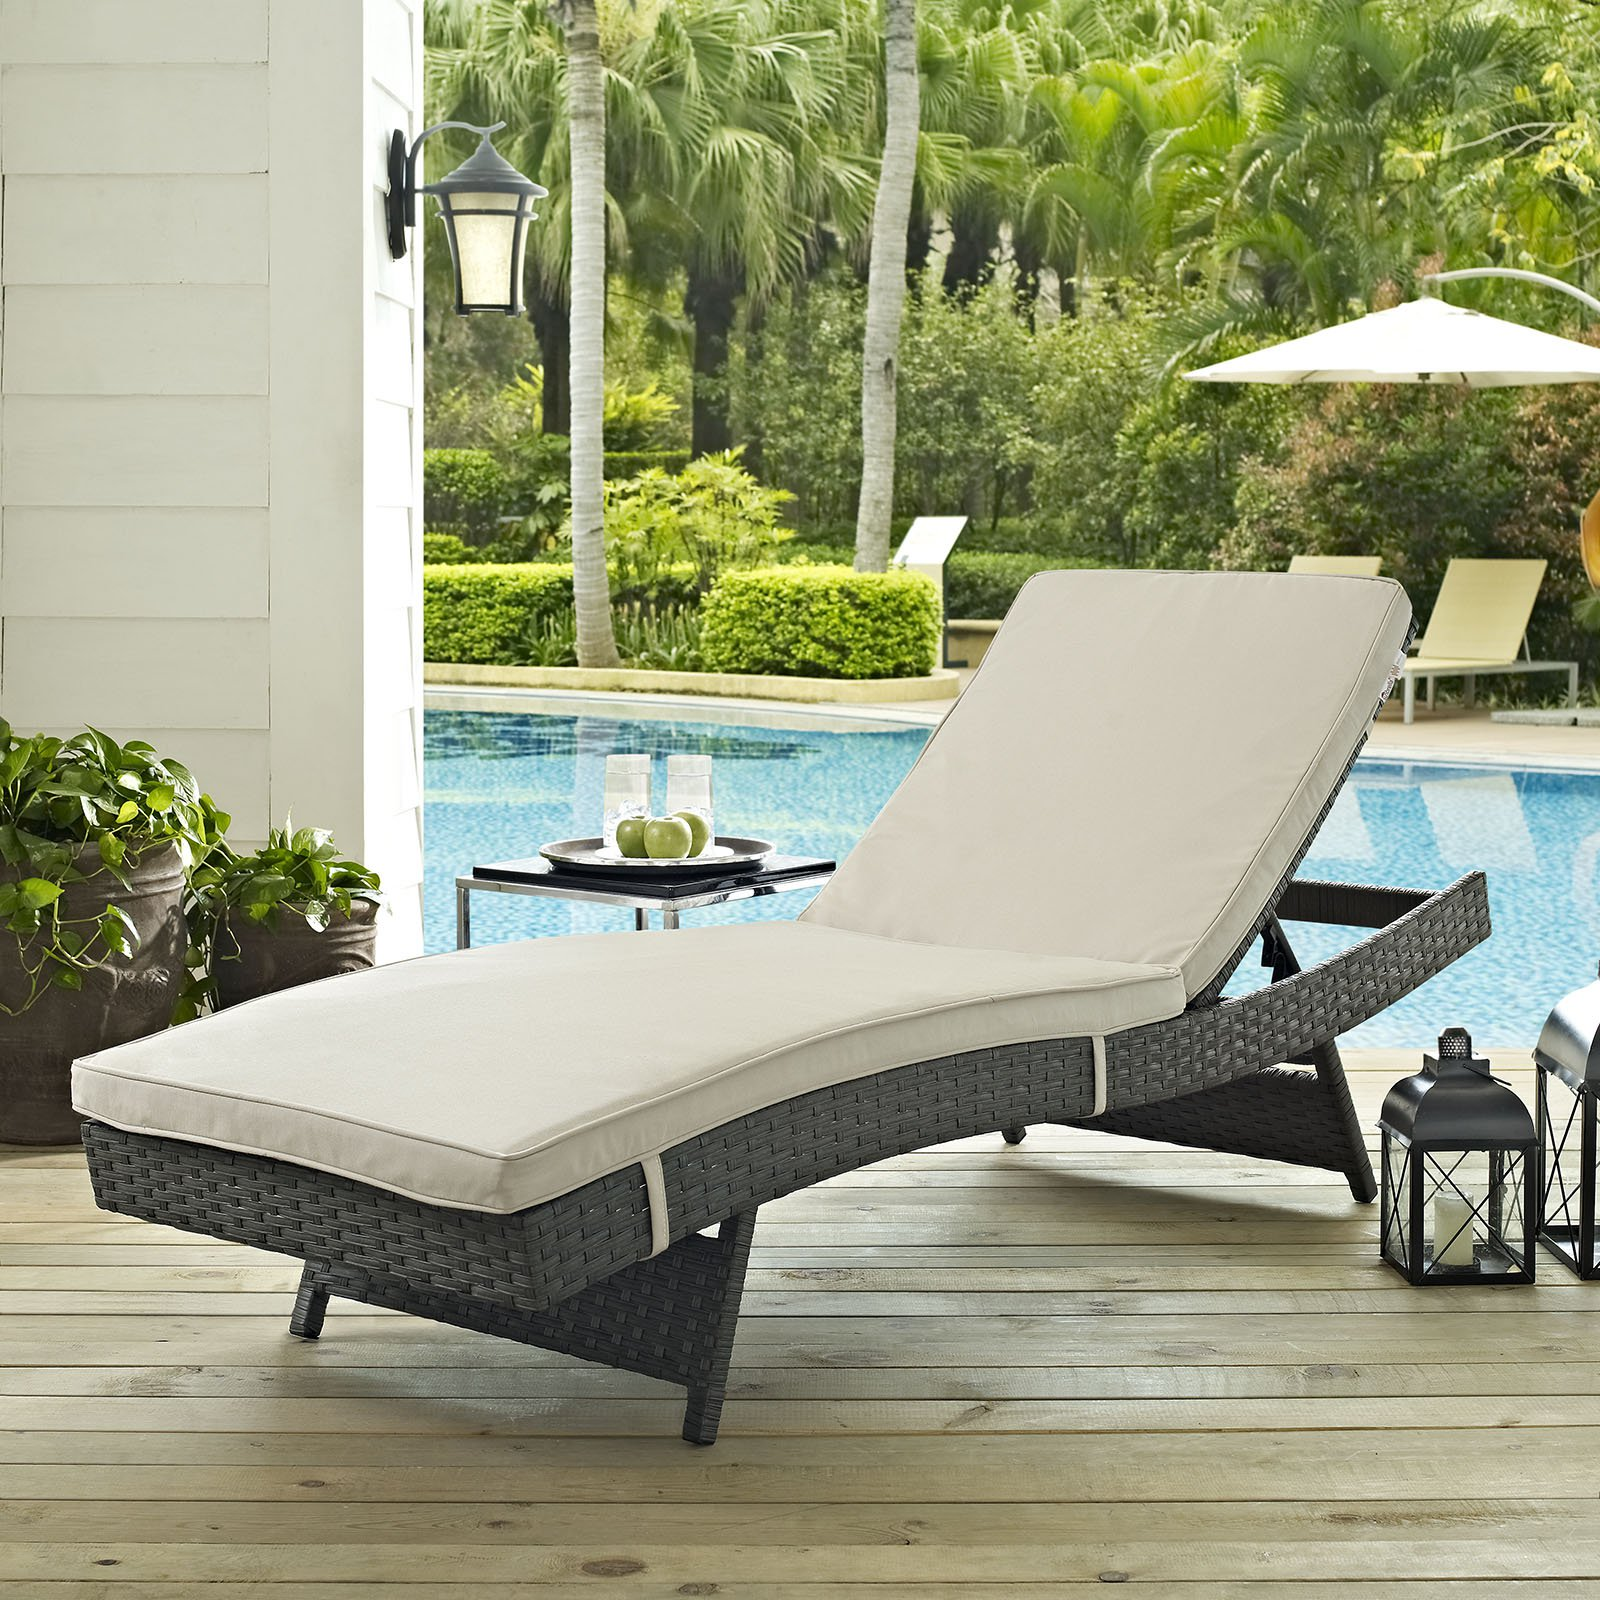 Modway Sojourn Outdoor Patio Sunbrella Chaise, Multiple Colors